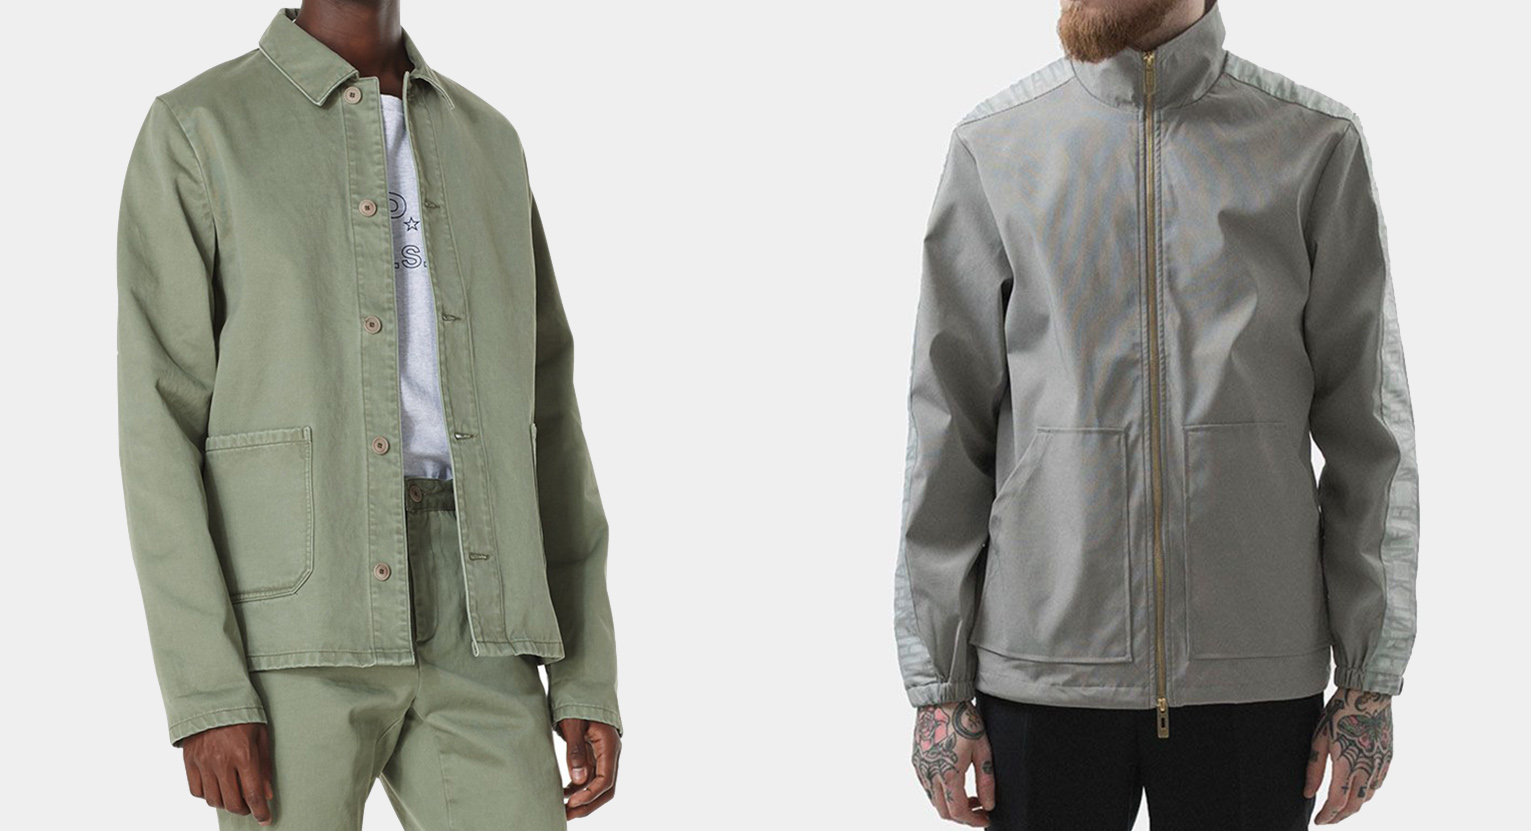 OPUMO Summer Sale Edit: The Top Picks From The 2018 Sale